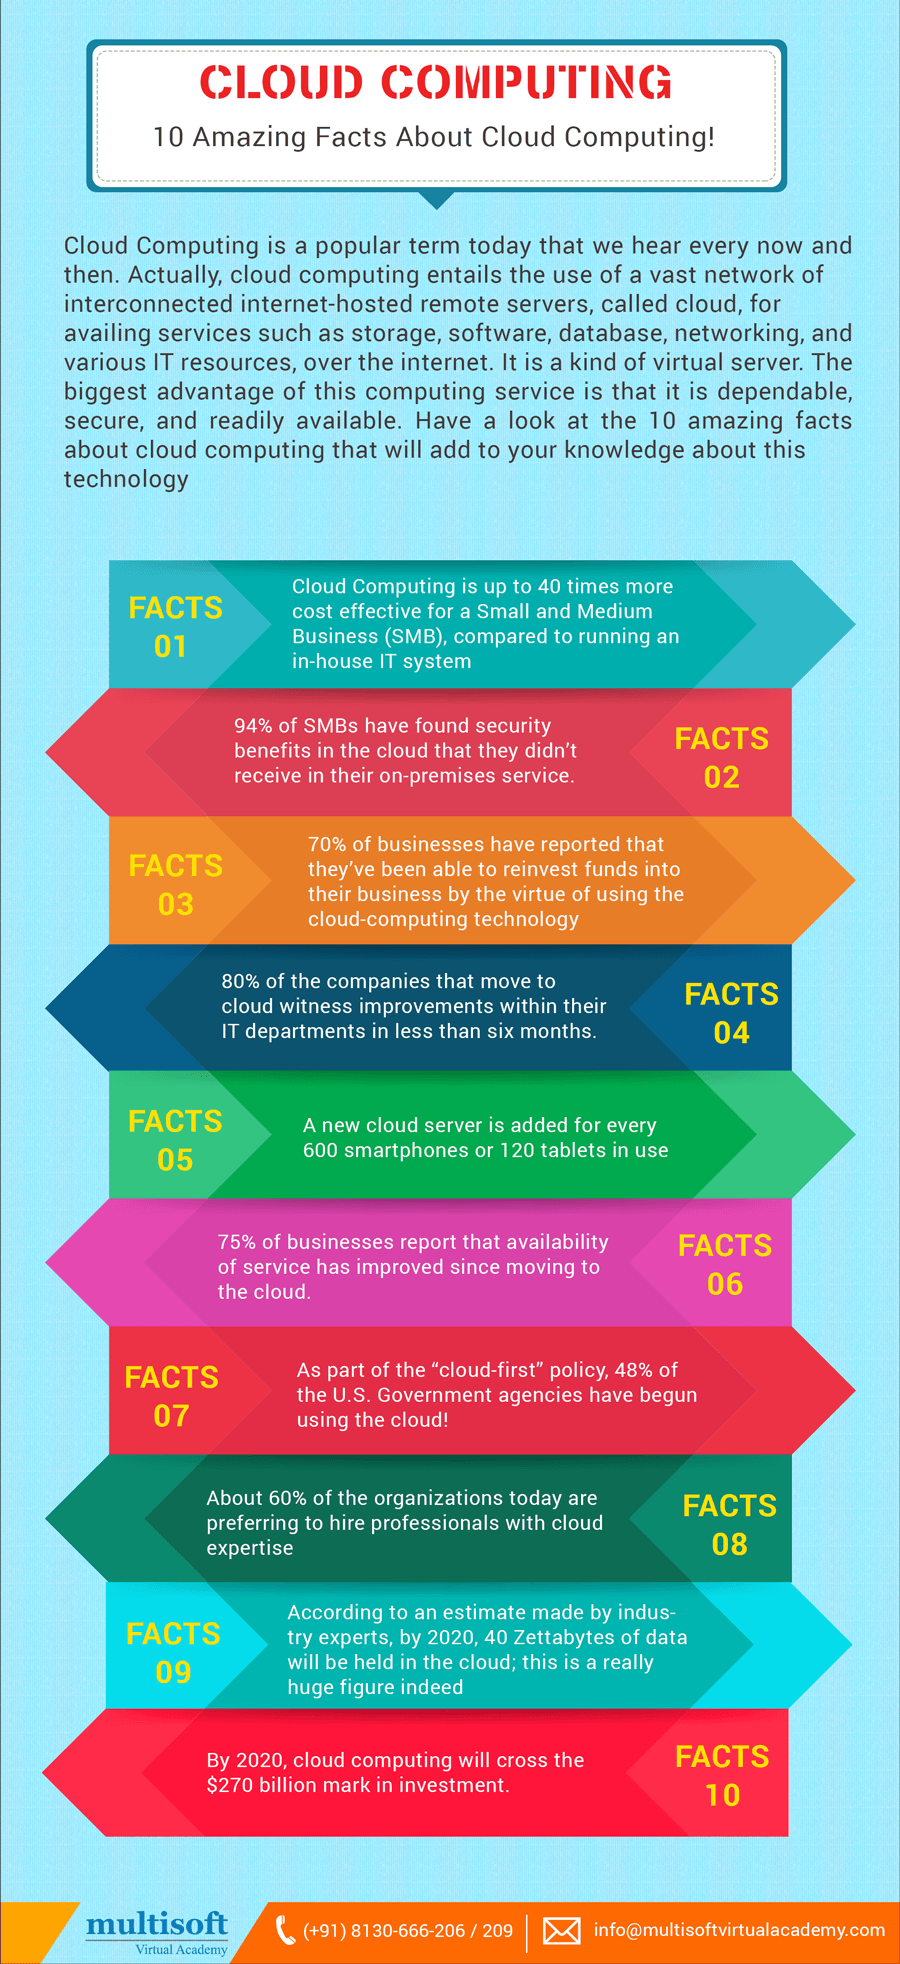 10 Amazing Facts About Cloud Computing Infographic